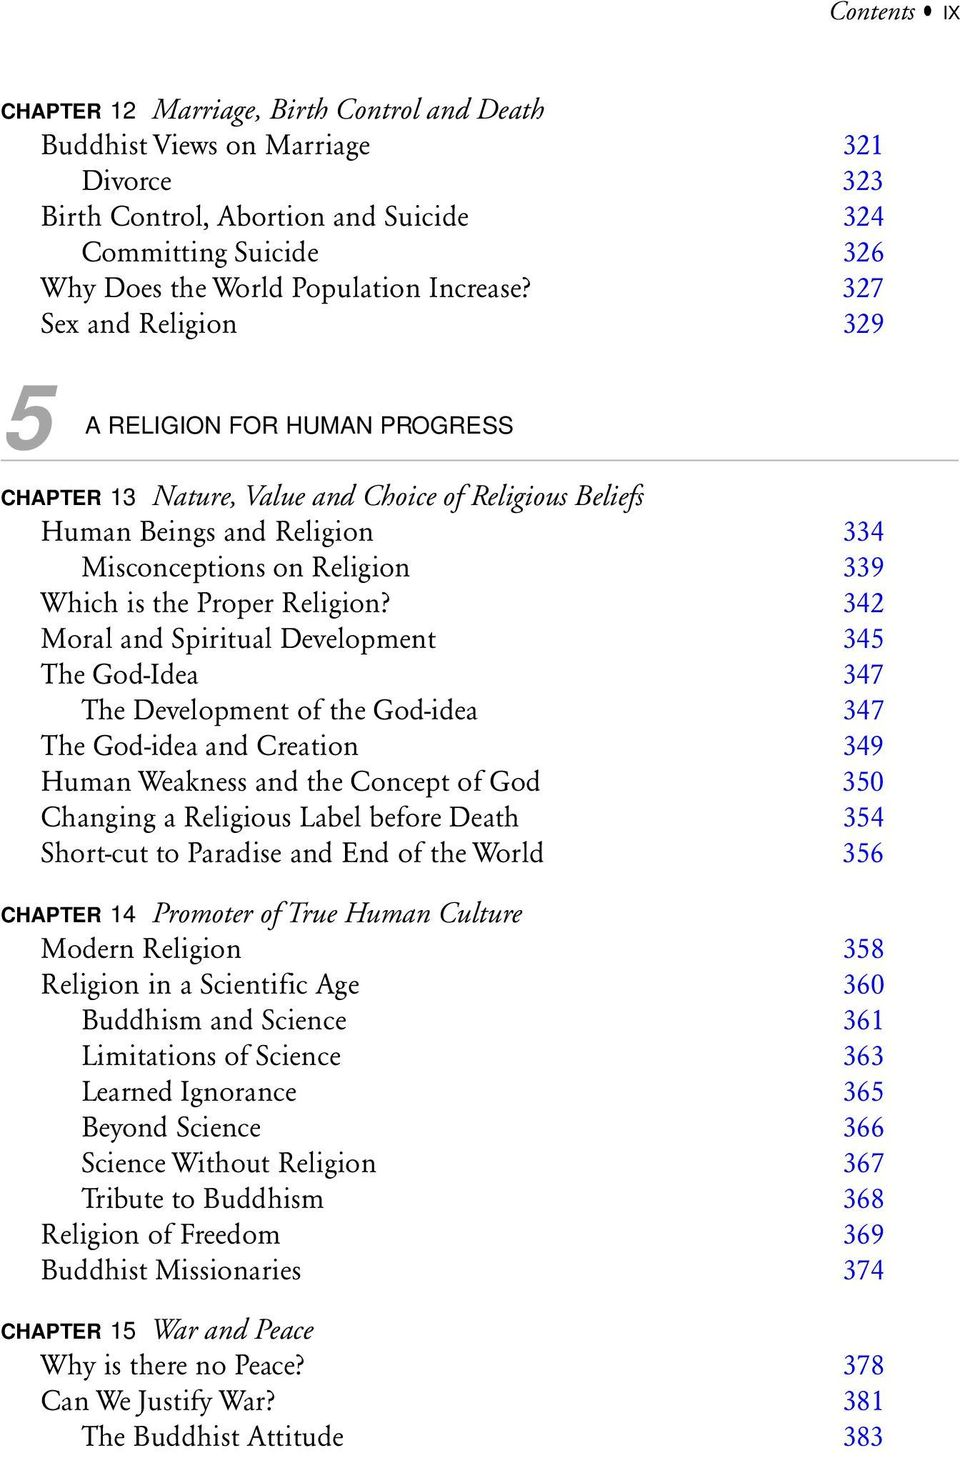 327 Sex and Religion 329 5 A RELIGION FOR HUMAN PROGRESS CHAPTER 13 Nature, Value and Choice of Religious Beliefs Human Beings and Religion 334 Misconceptions on Religion 339 Which is the Proper